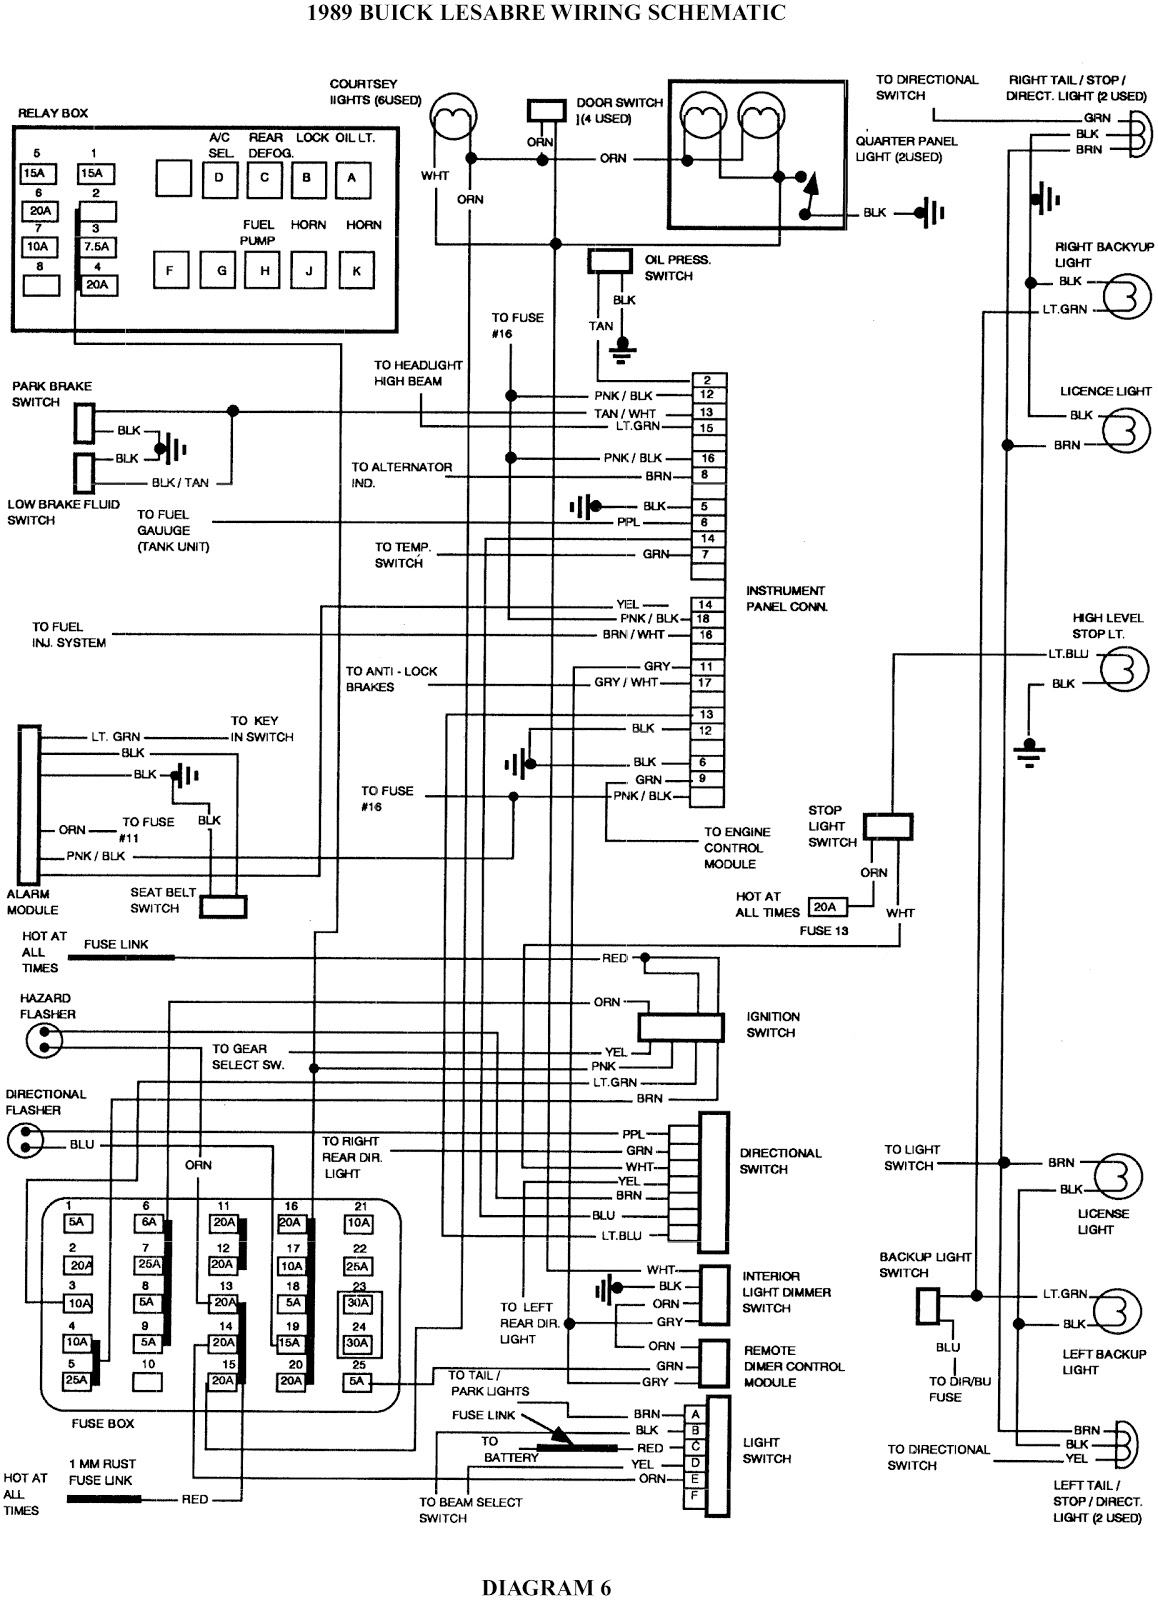 Find Wiring Diagram 2005 Envoy Auto Electrical 2003 Buick Lesabre Airbag